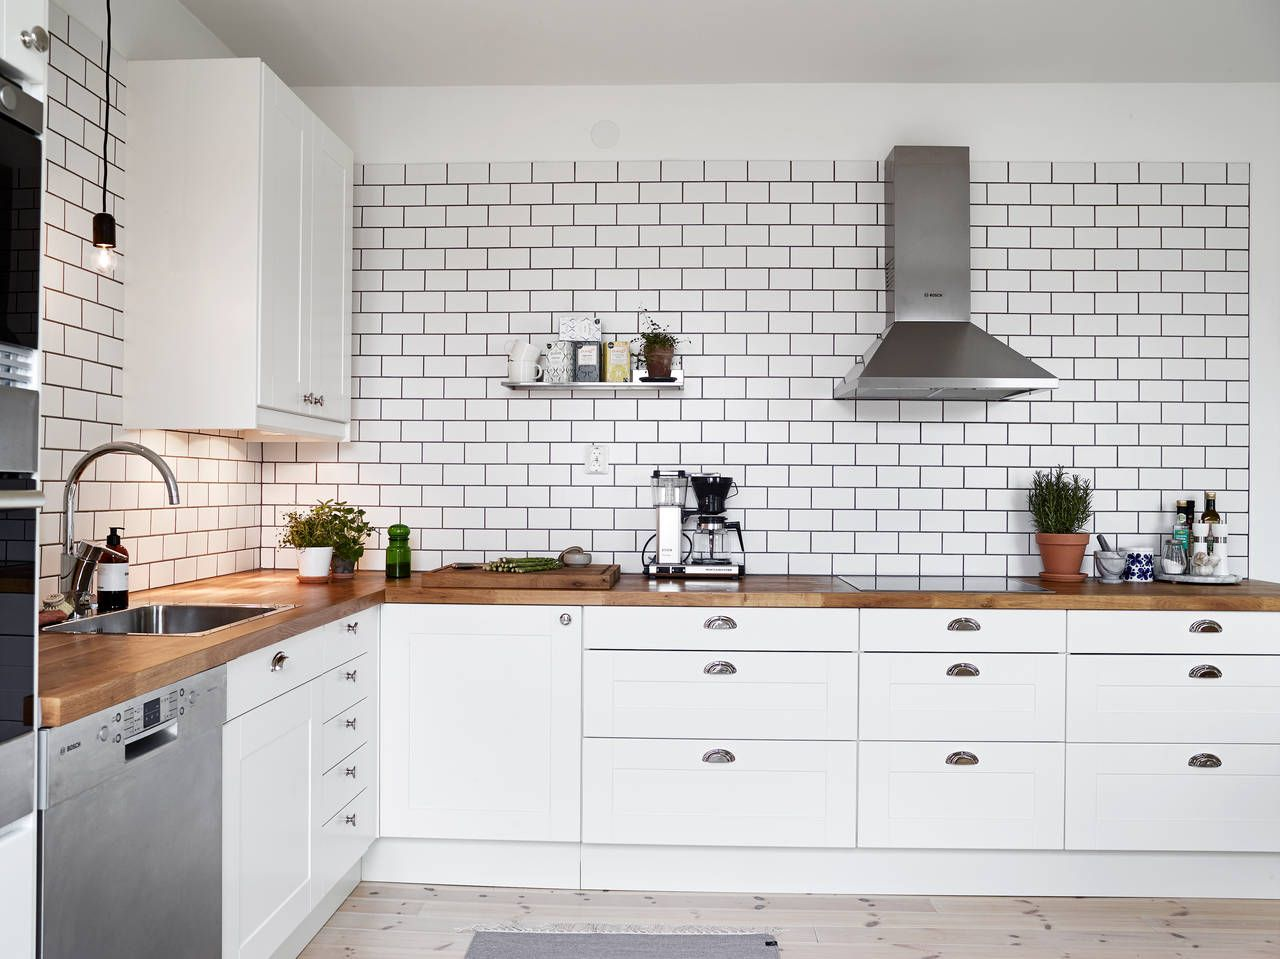 White Tiles And Black Grout Are Still My Dream Backsplash For Future Non Al Kitchen I